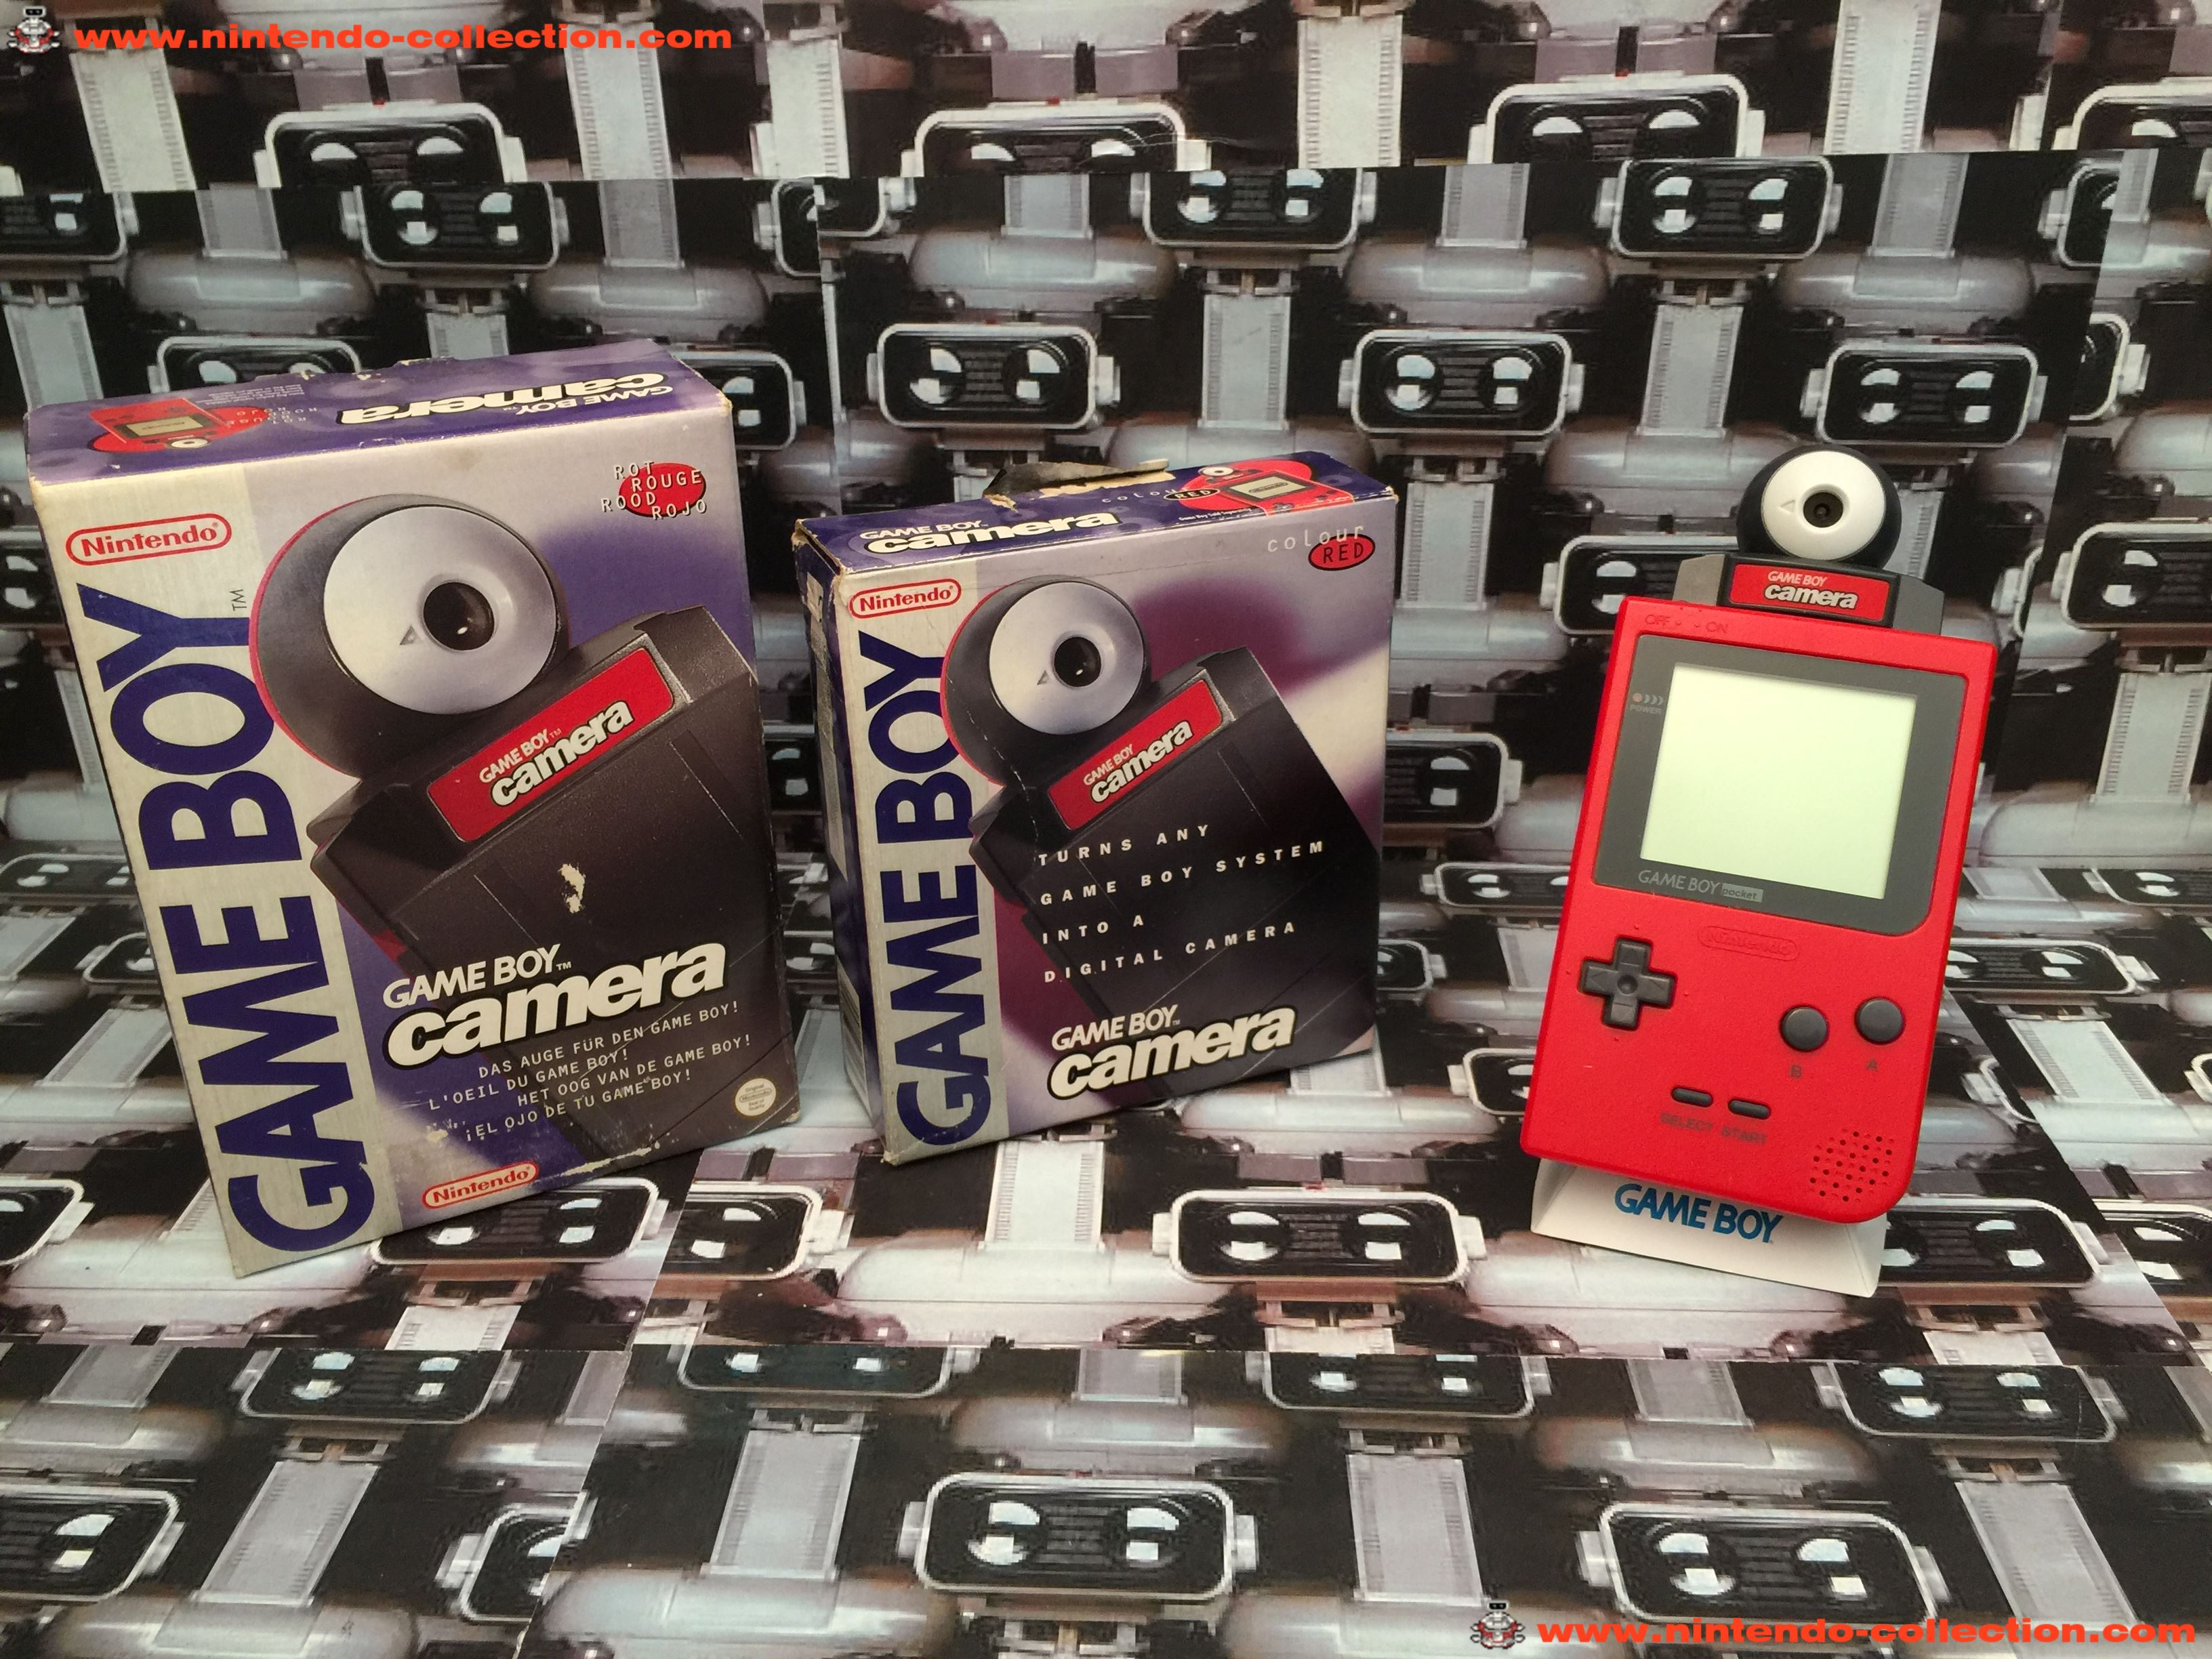 www.nintendo-collection.com - GameBoy Pocket + GameBoy Camera Red Rouge UK Version Royaume-Uni + Eur